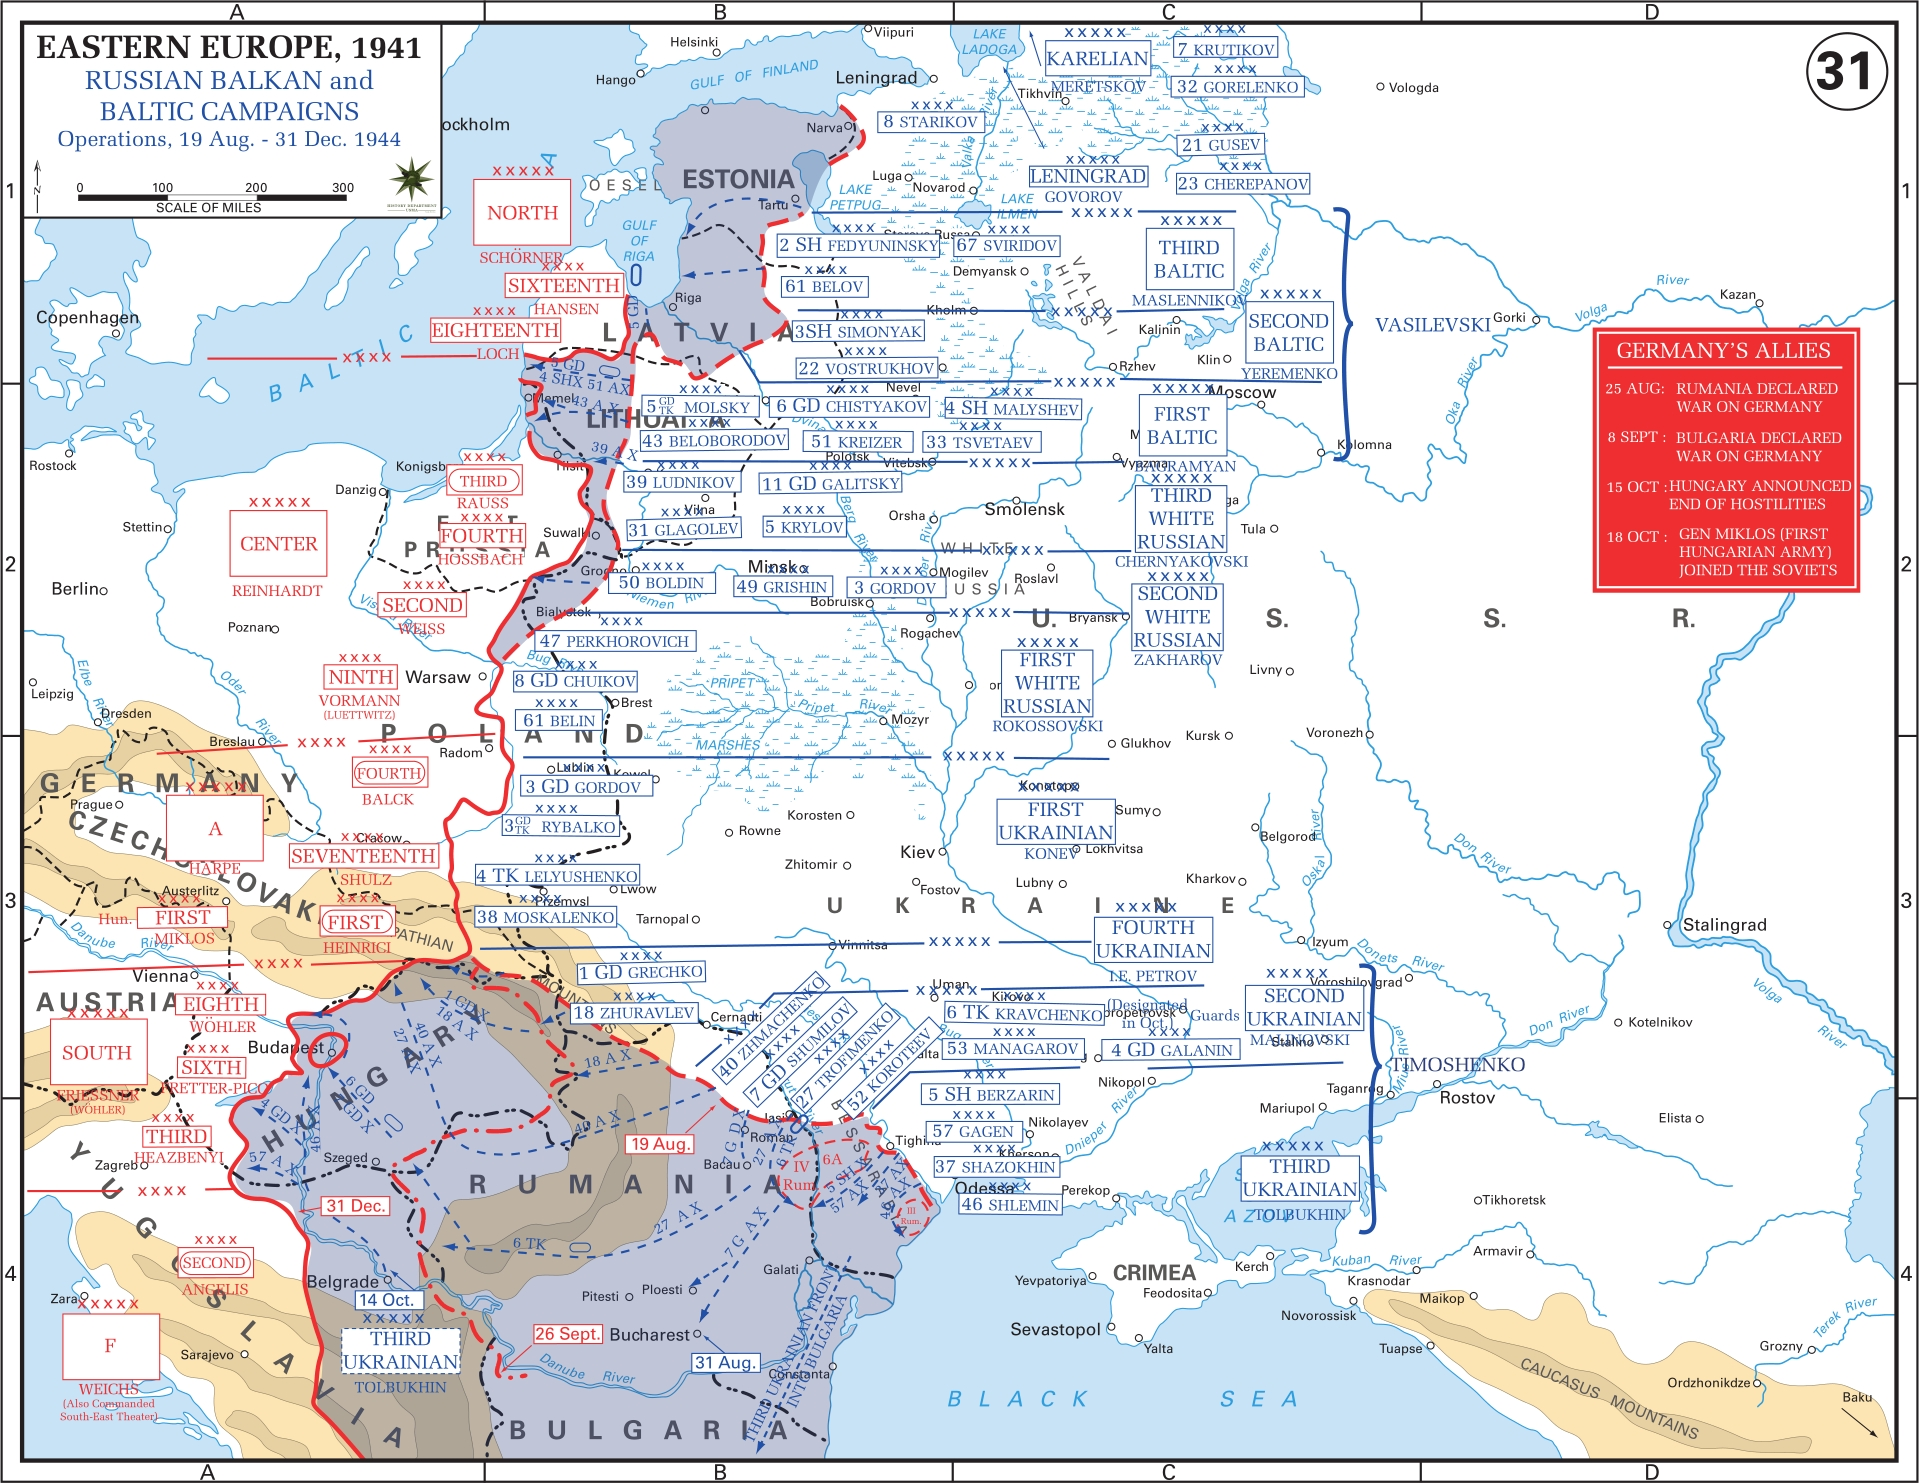 Eastern Front Maps Of World War Ii - Inflab - Medium within Ww2 German Maps For Sale